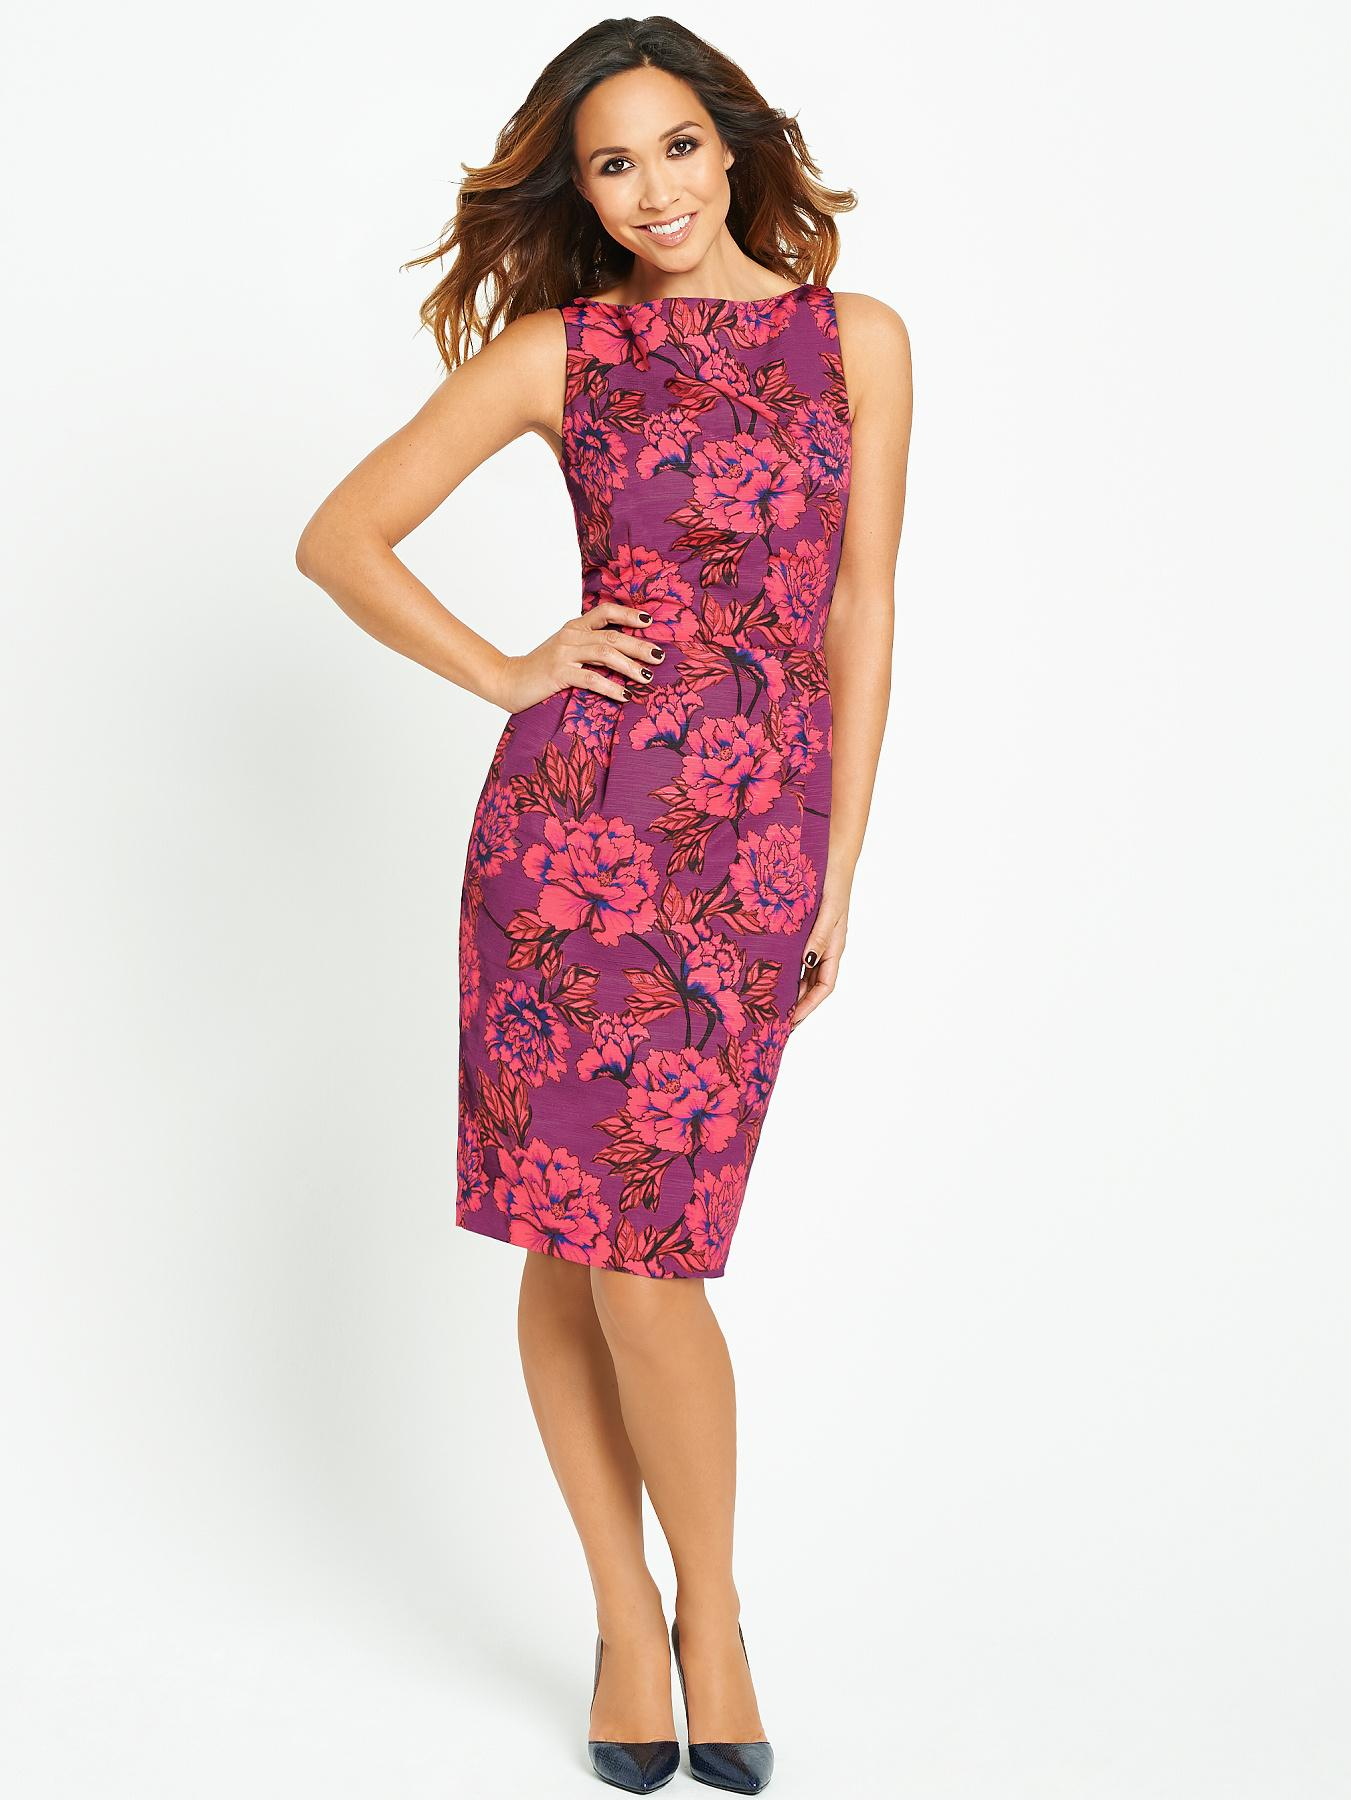 Myleene Klass Bright Floral Pencil Dress